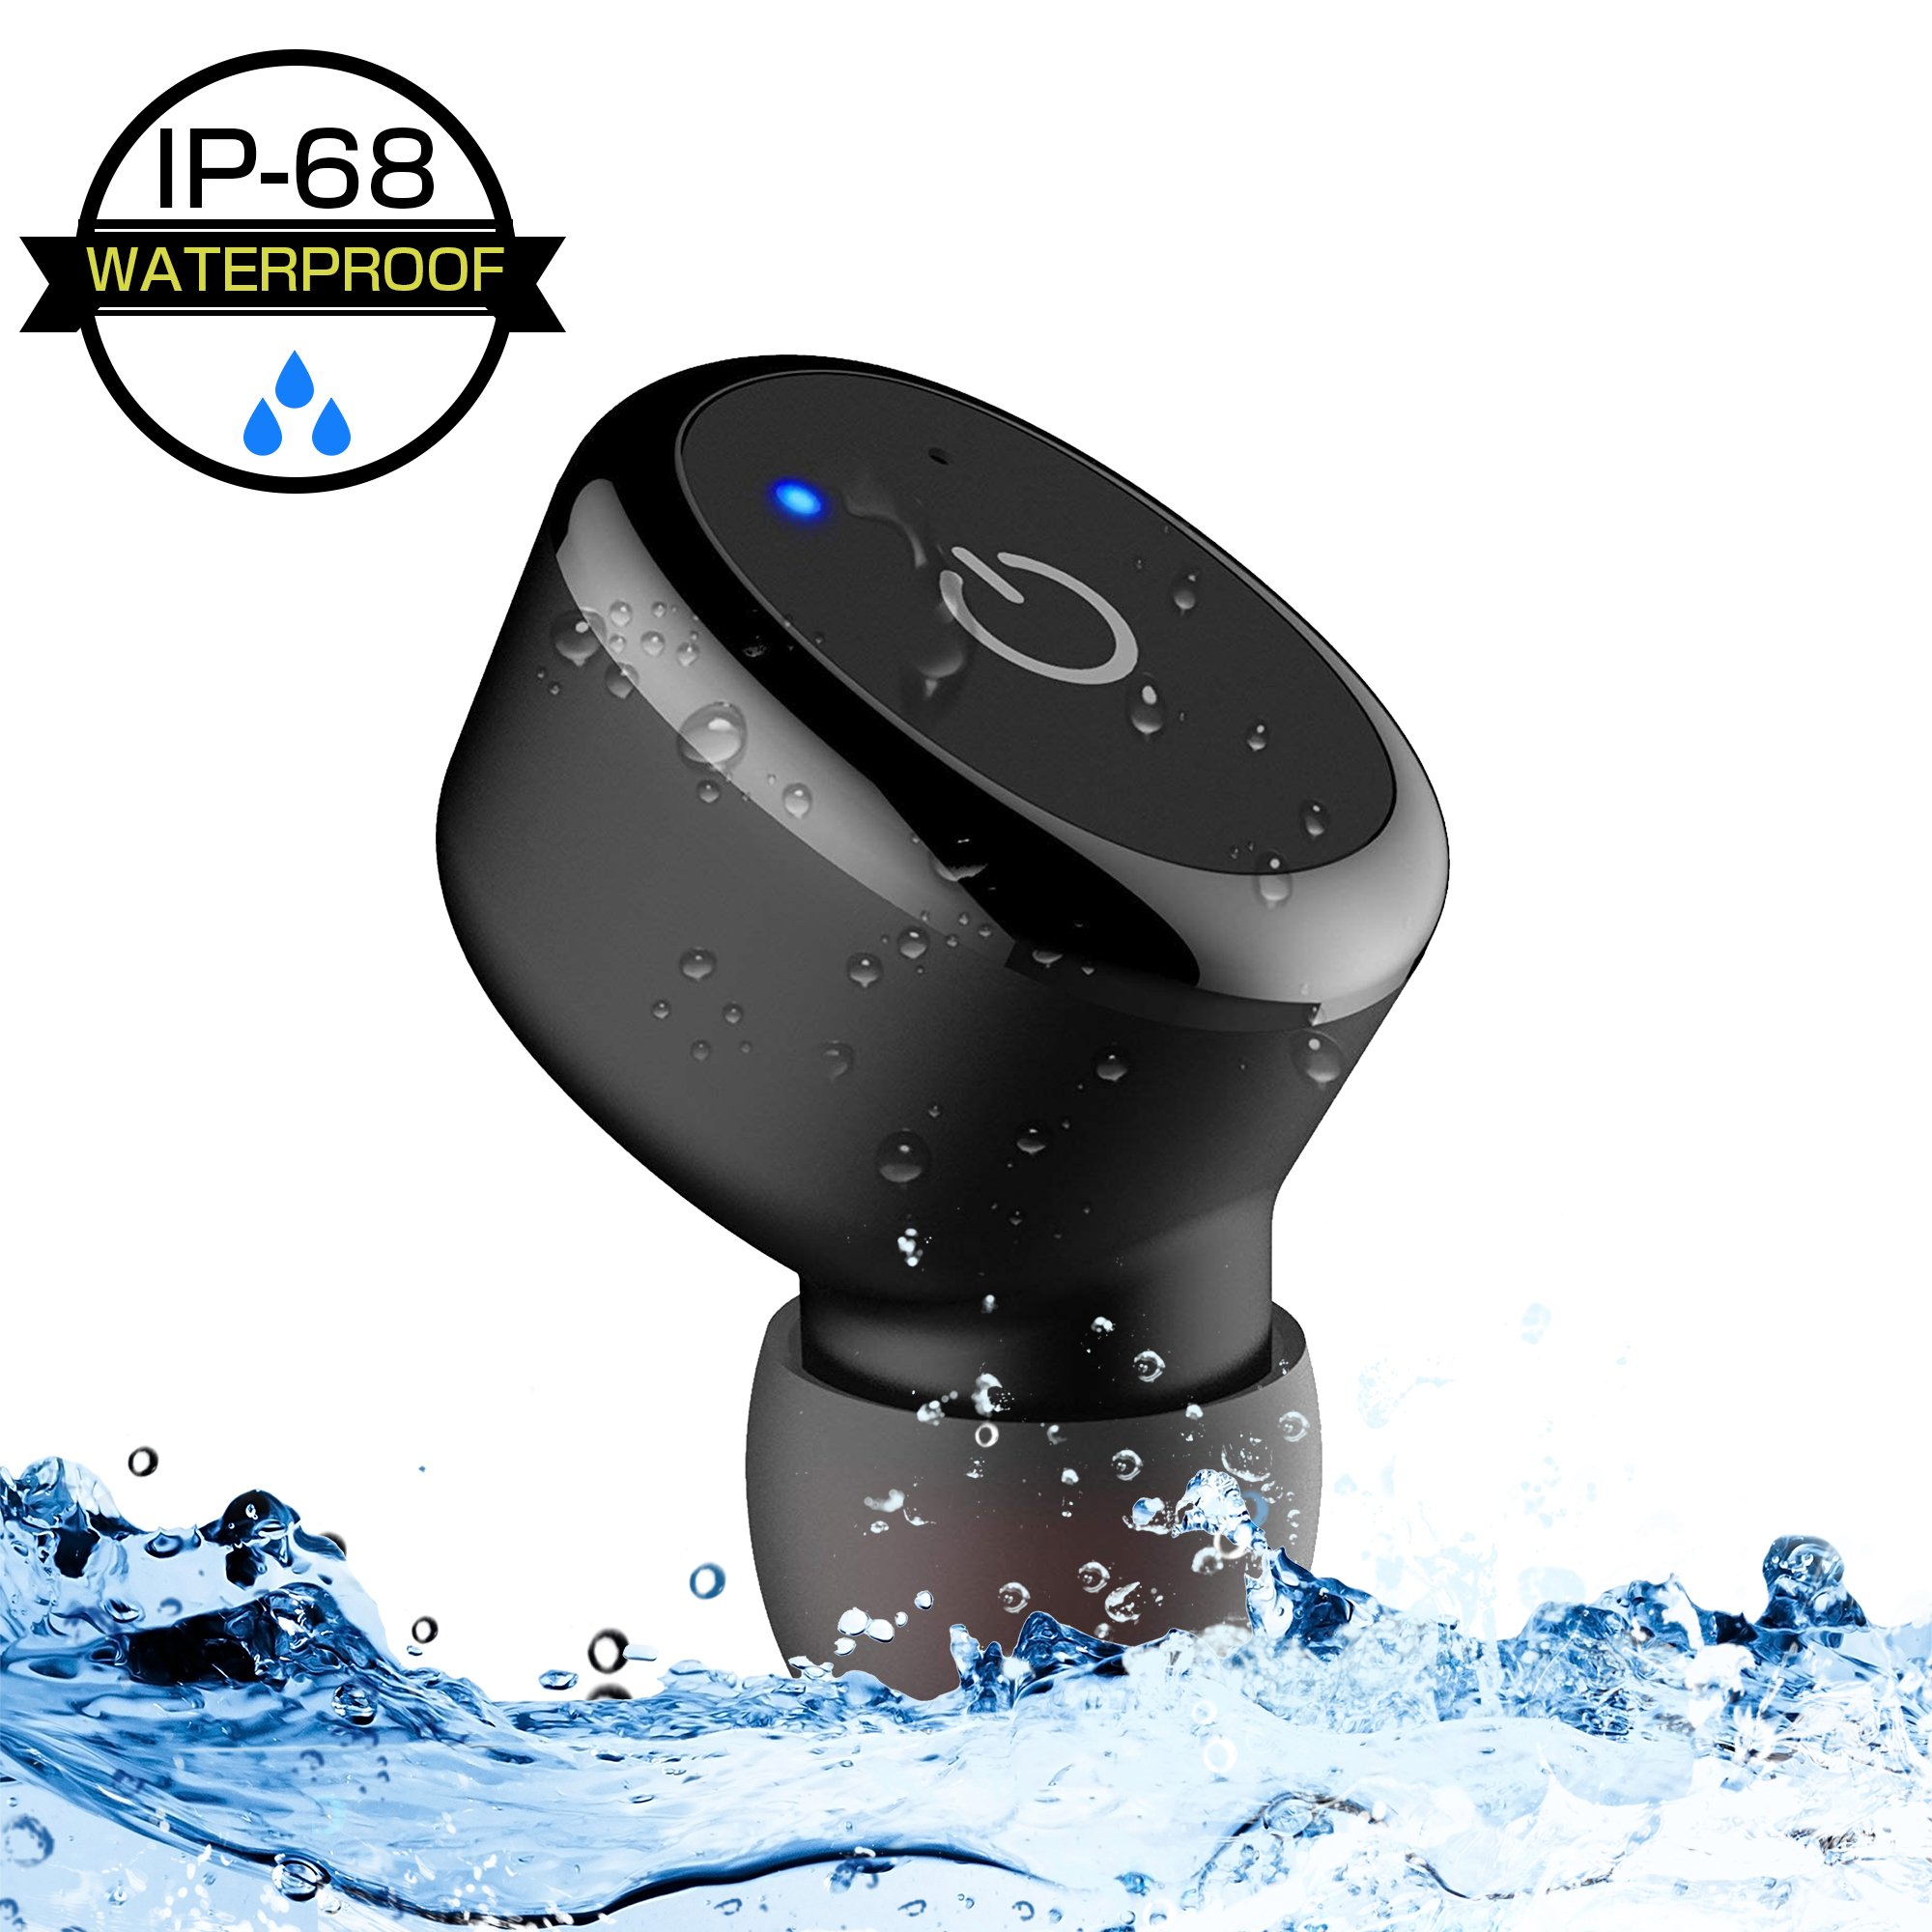 IPX8 Waterproof Earbud, MIBOTE Bluetooth V4.1 Wireless Earphone Mini Earpiece Sports Headset Car Headphone with Mic 6 Hours Play Time for iPhone iPad Samsung Android Cellphones (1 Piece)